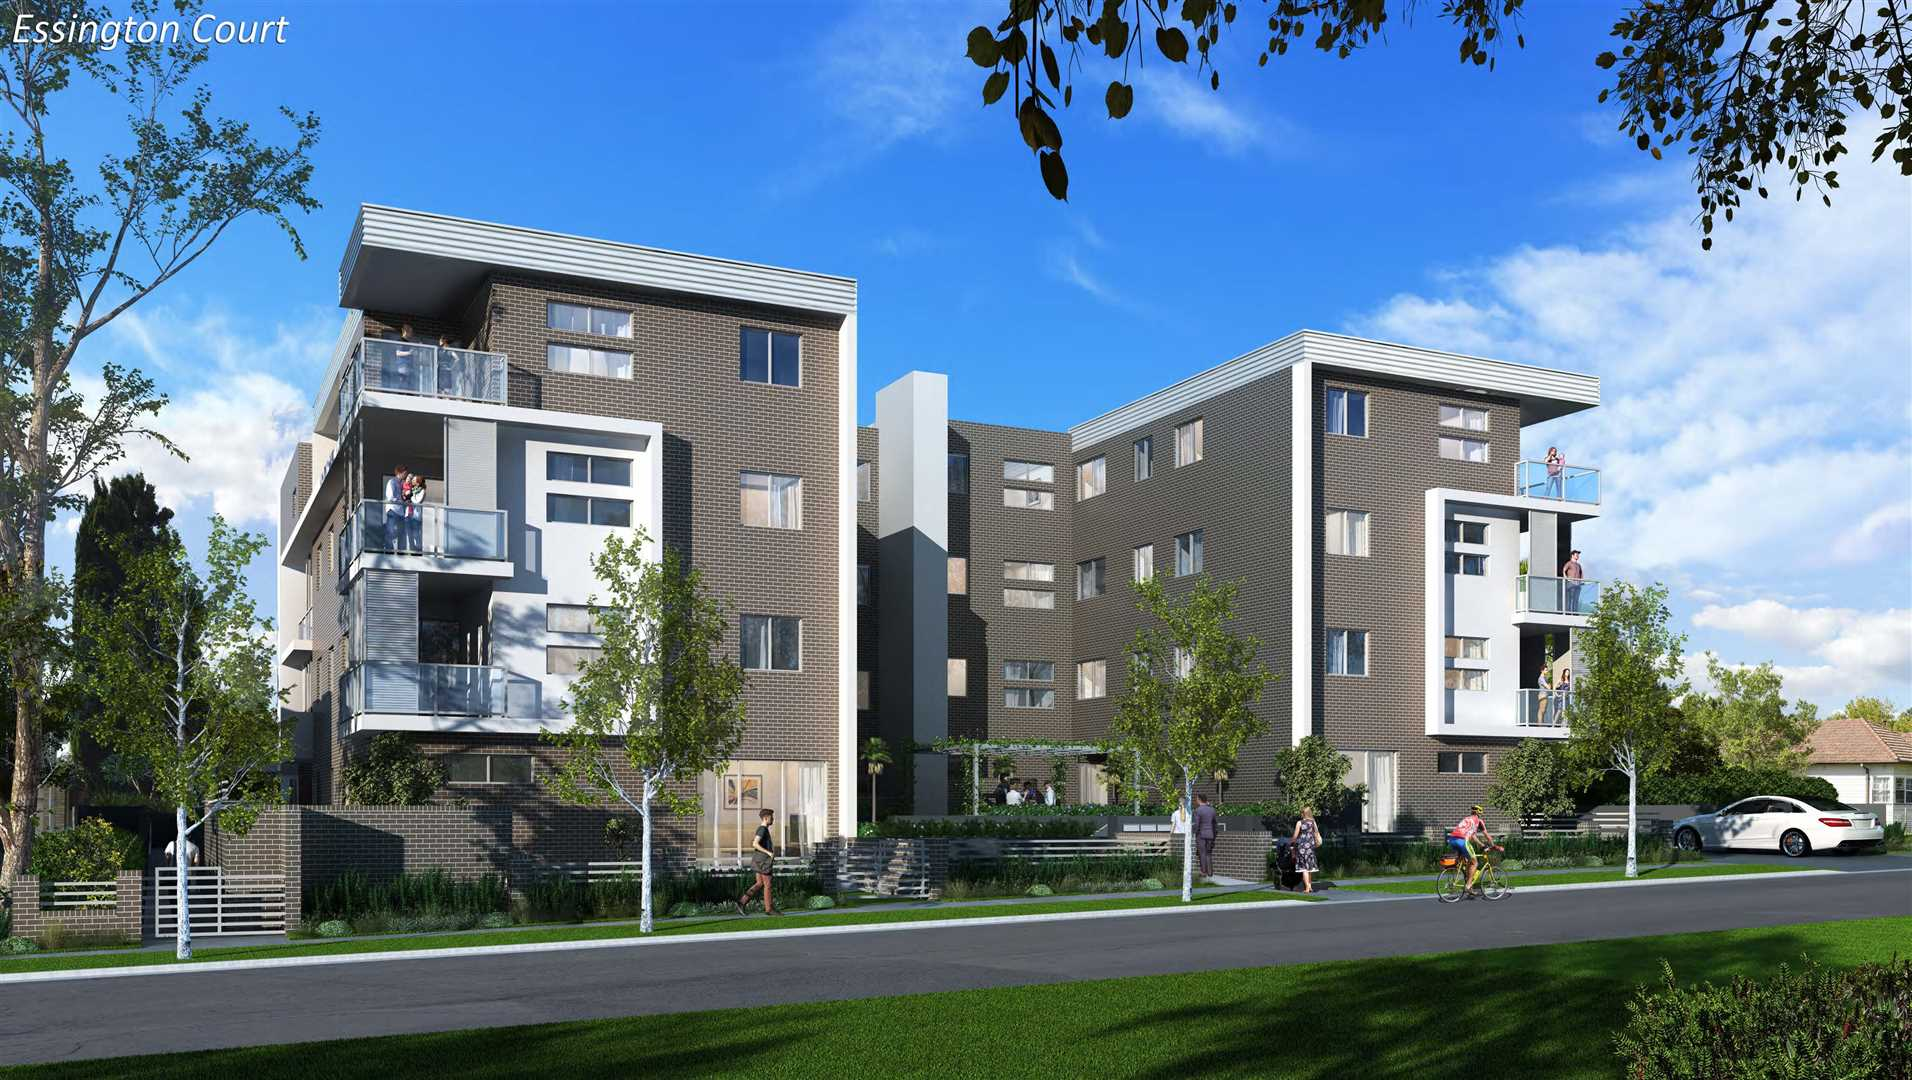 High Class Apartments Living in the Heart of Wentworthville